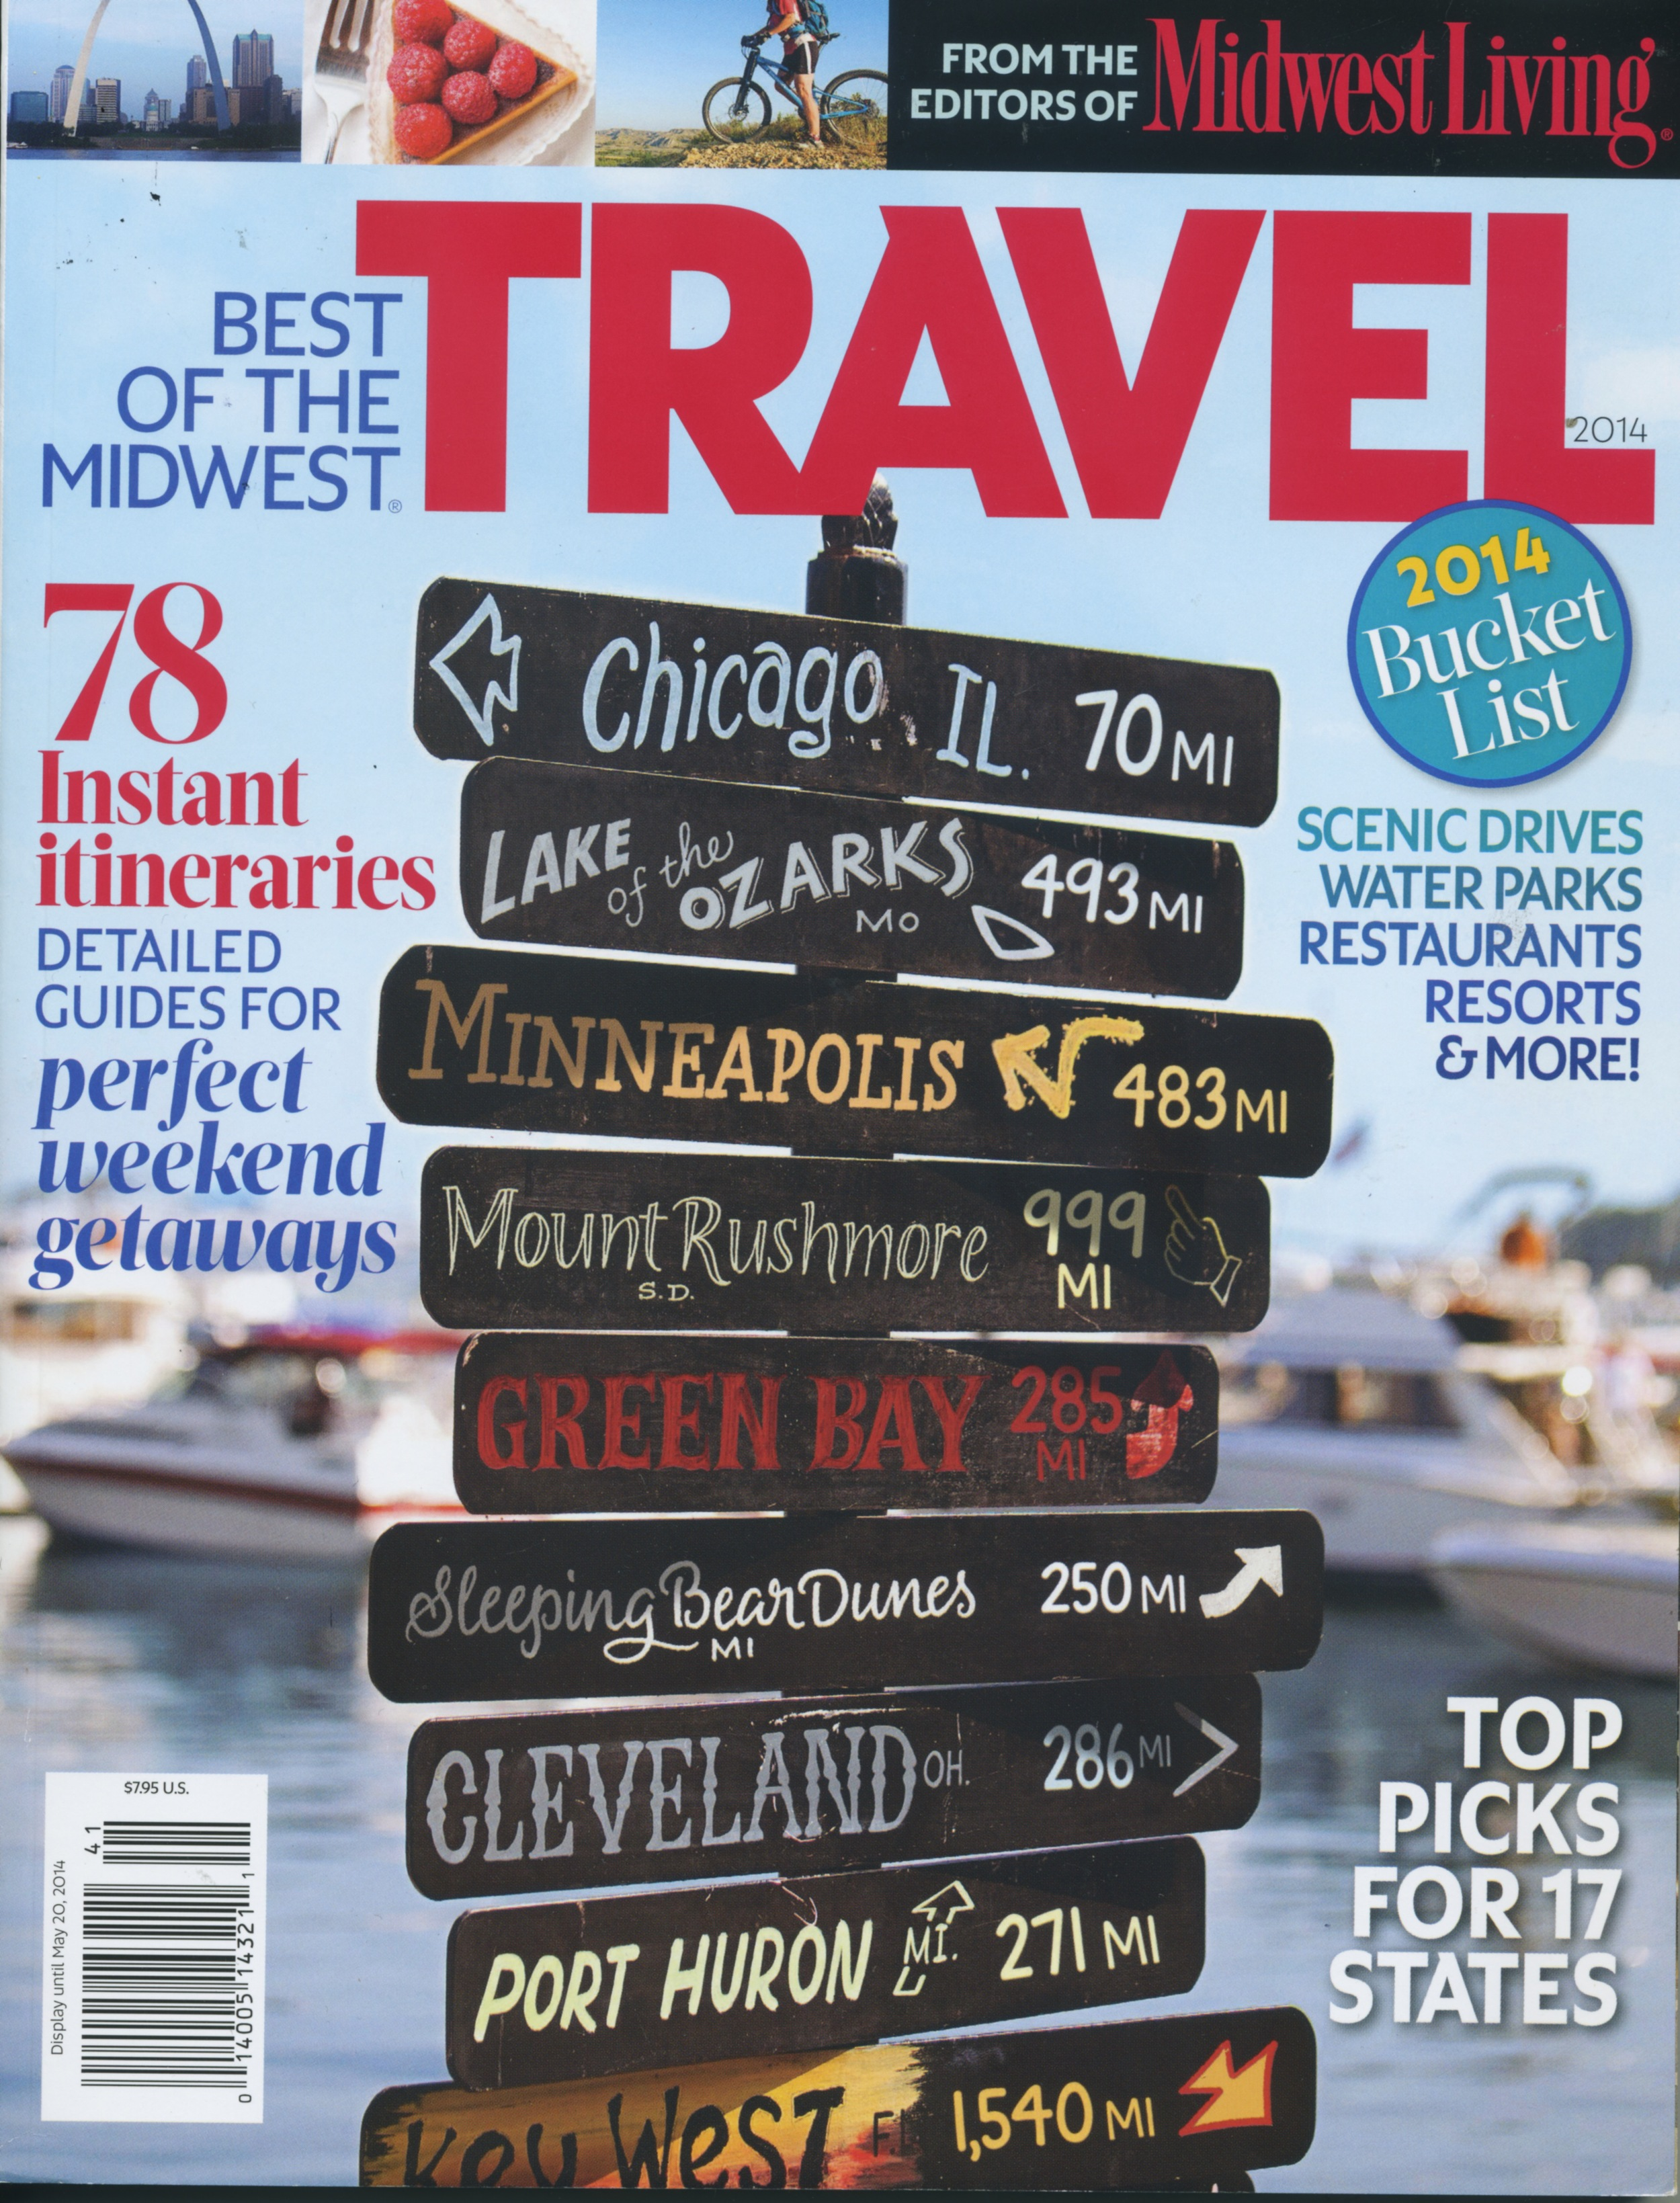 Best of the Midwest Travel- May 2014